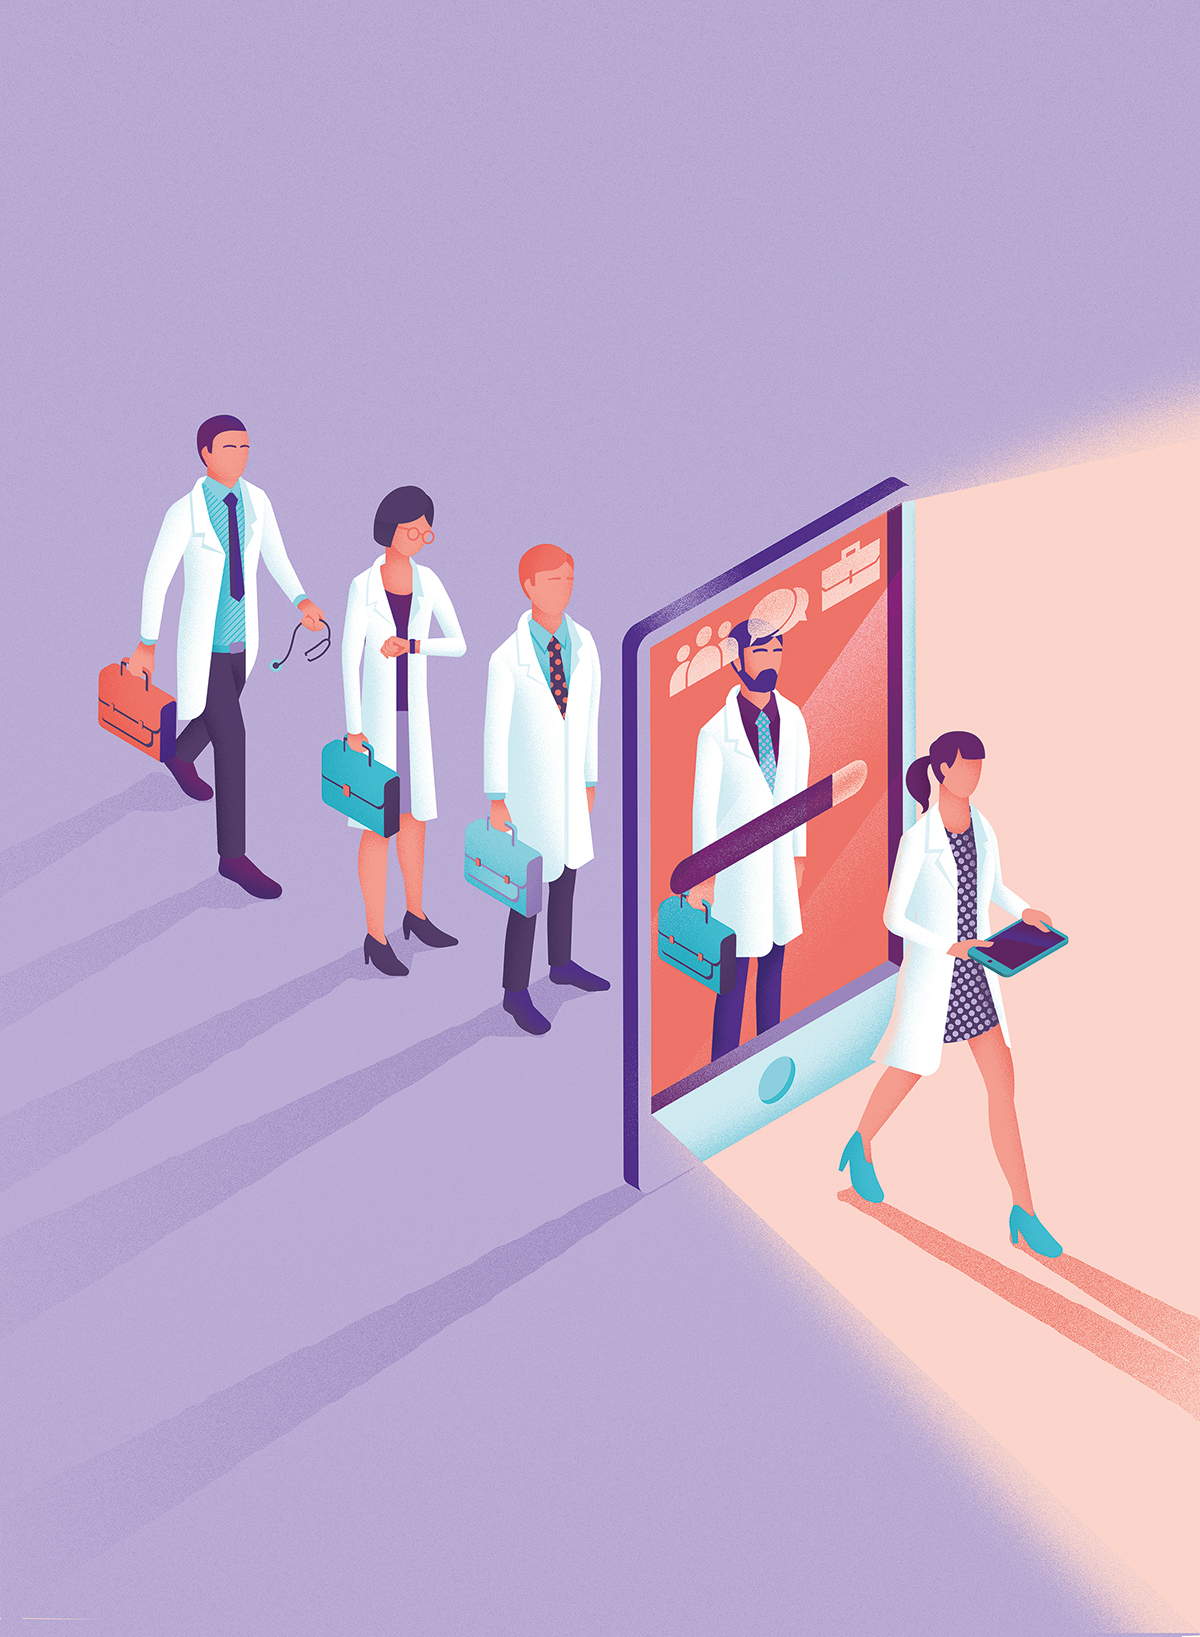 medical Technology iPad tablet doctors medicine Magazine Cover Editiorial Isometric characters evolution progress Education walking